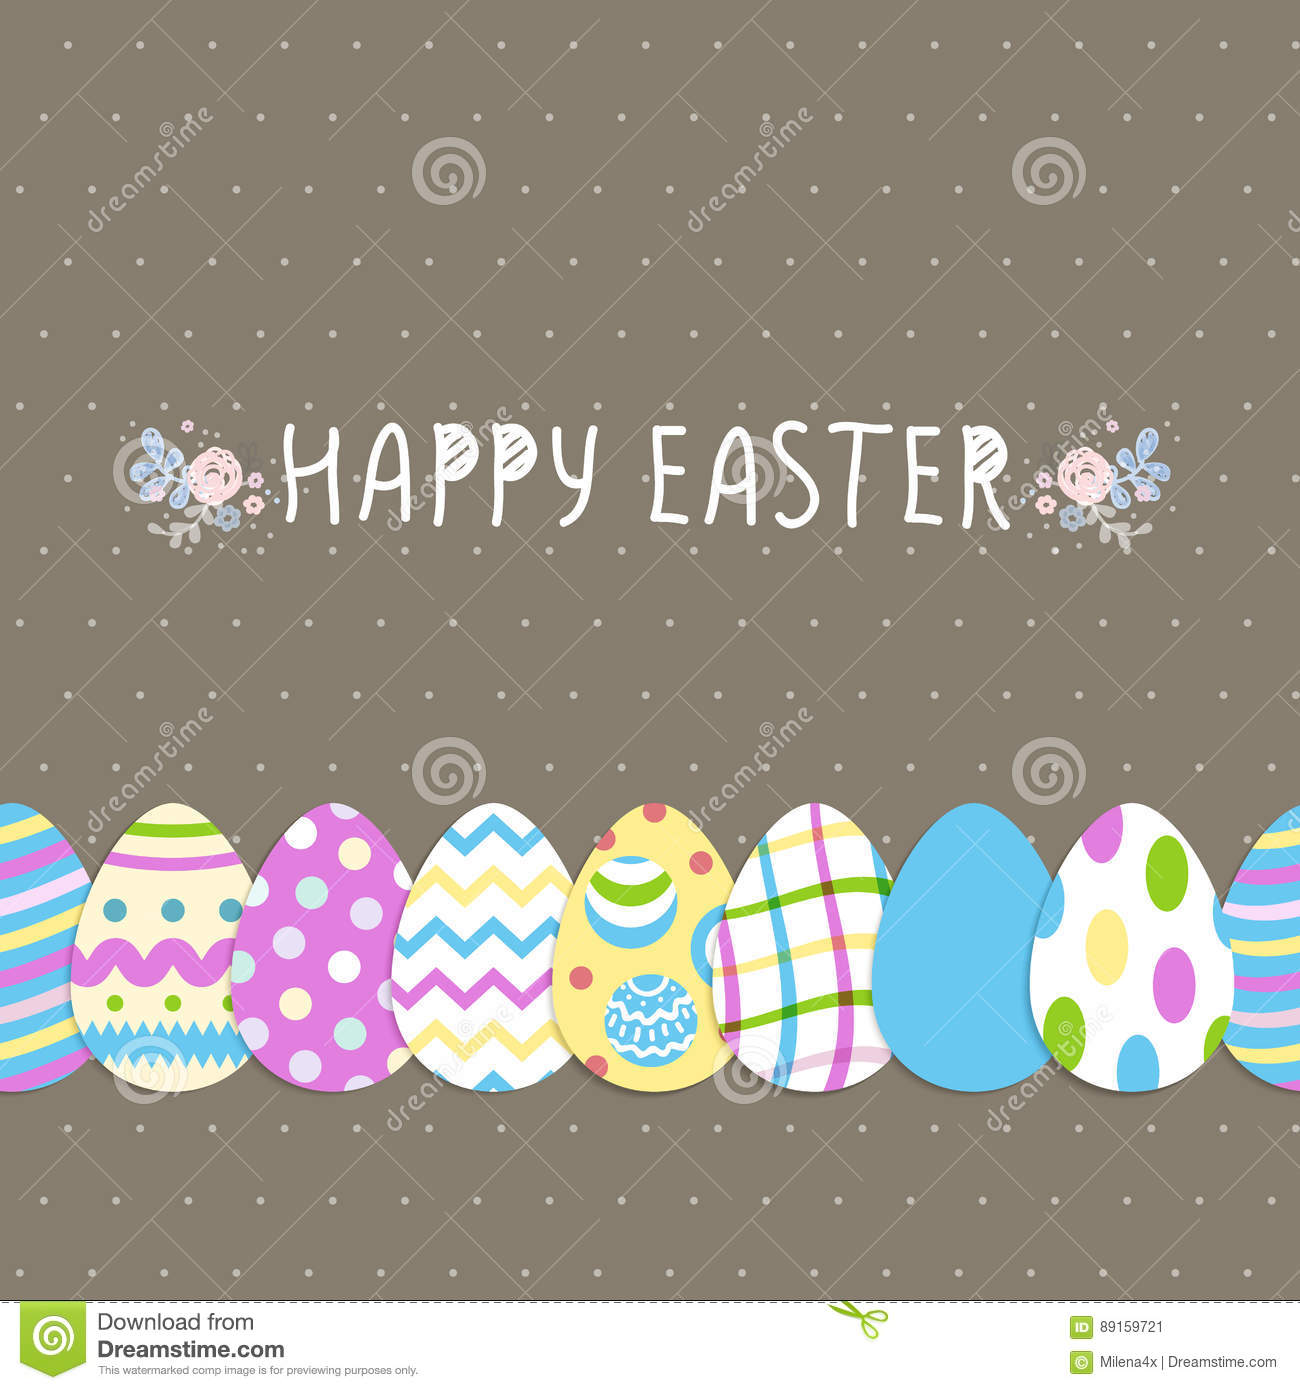 seamless eggs bright pattern happy easter cute poster vector seamless eggs bright pattern happy easter cute poster vector illustration flyers